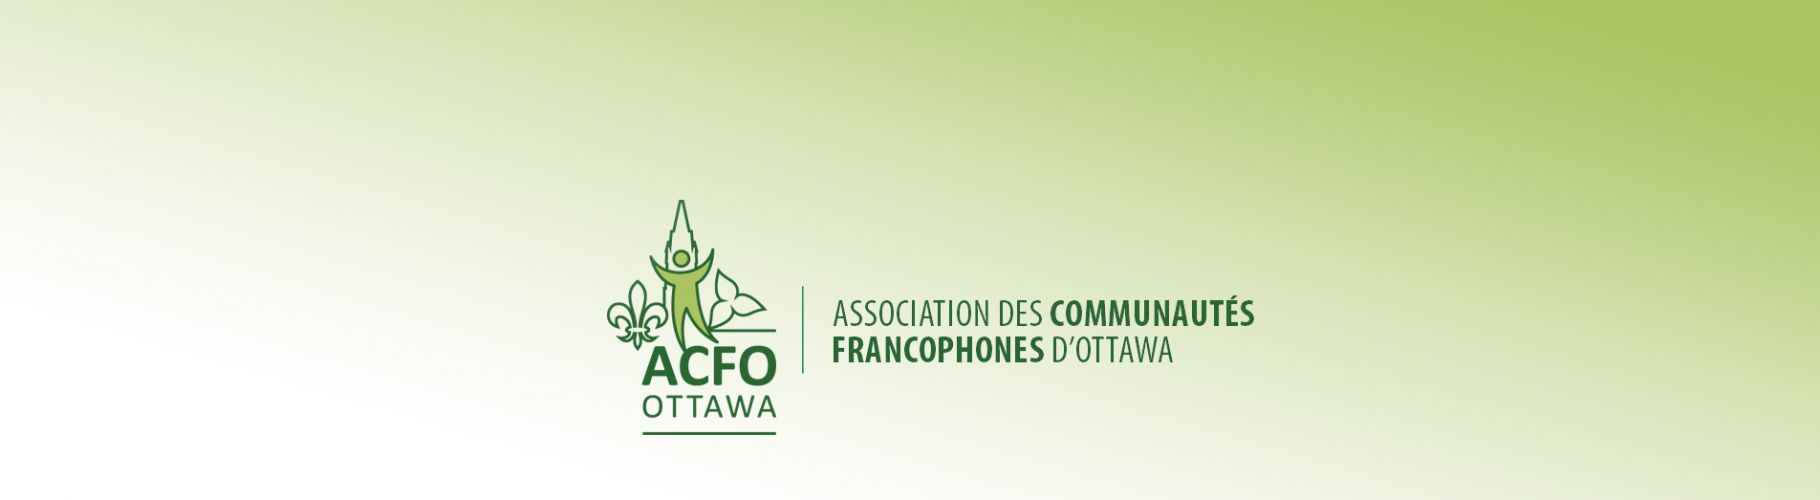 A green illustration which combines the Peace Tower of the Canadian Parliament in the centre, the fleur-de-lis to the left, and the trillium to the right. A bicoloured human figure raises its arms in front of the tower. The acronym ACFO Ottawa appears under the logo, separated by a green horizontal line. The full name of the organisation appears to the right, separated by a vertical line.